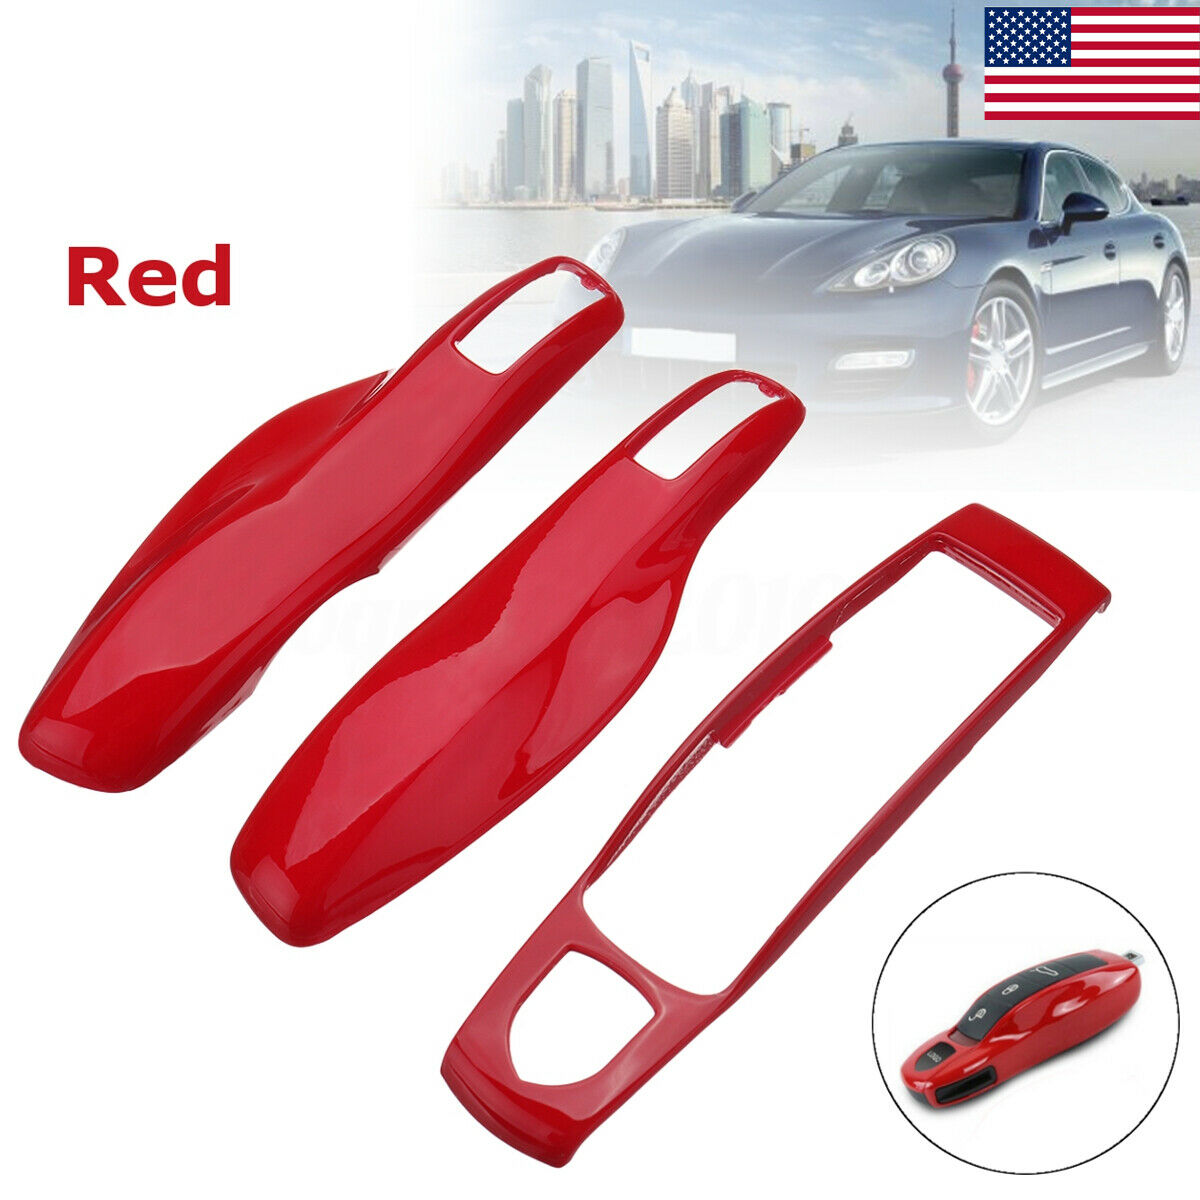 Remote Start Keyless Key Case Cover Shell for Porsche Cayenne Panamera Caman 911 981 Red